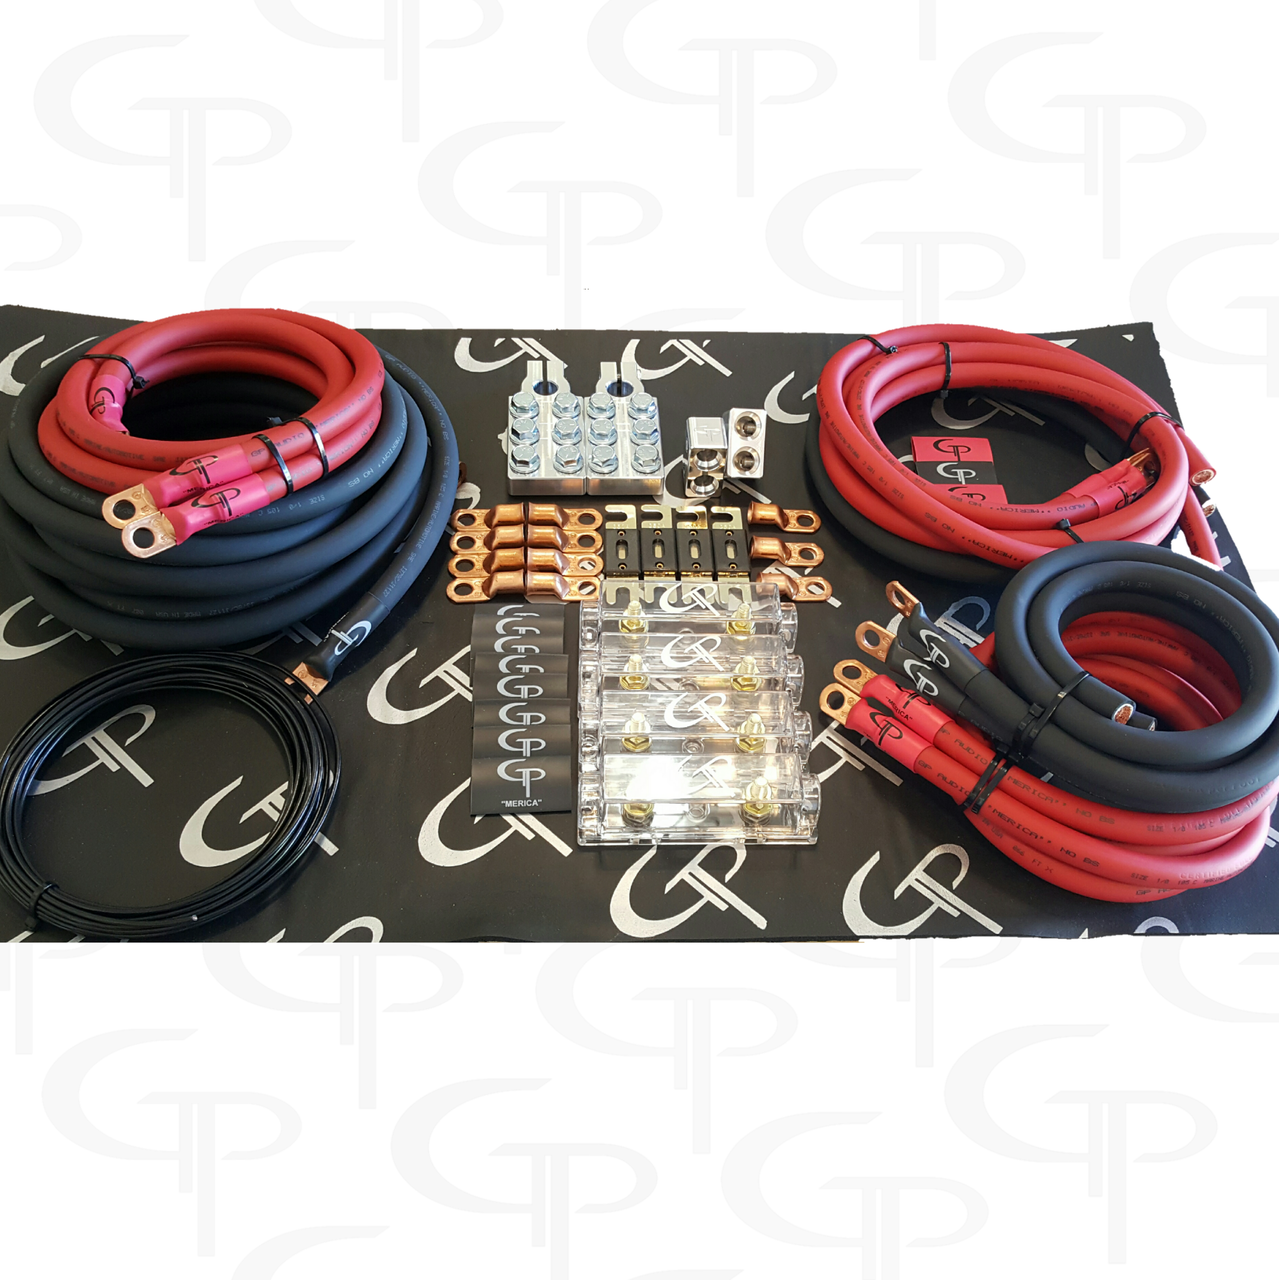 *The Complete Advanced: 2/0 AWG Stage 2 Wiring Kit on